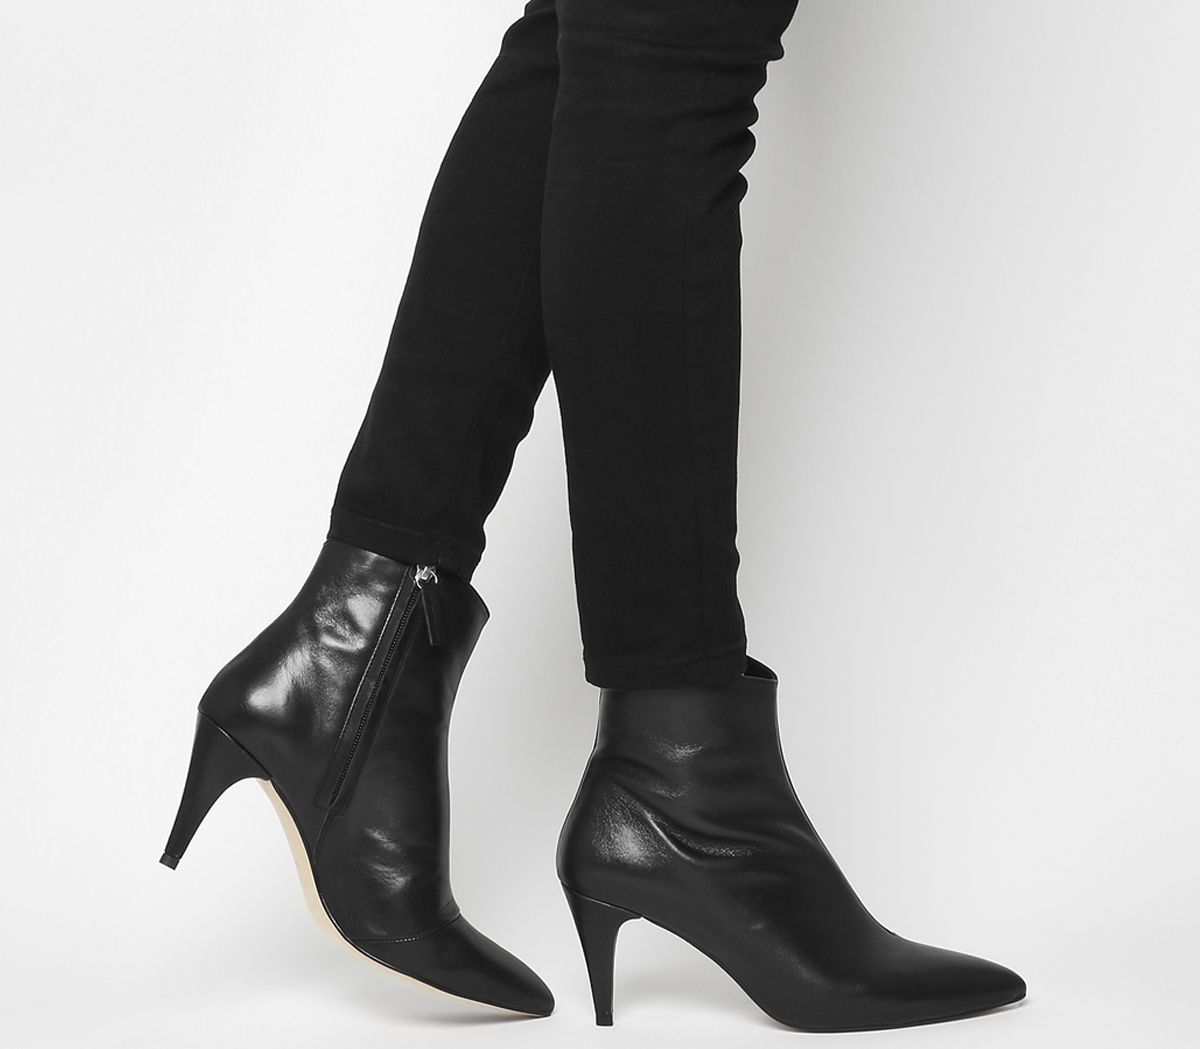 cc552f93638 Office Ab Fab Stiletto Boots Black Leather - Ankle Boots